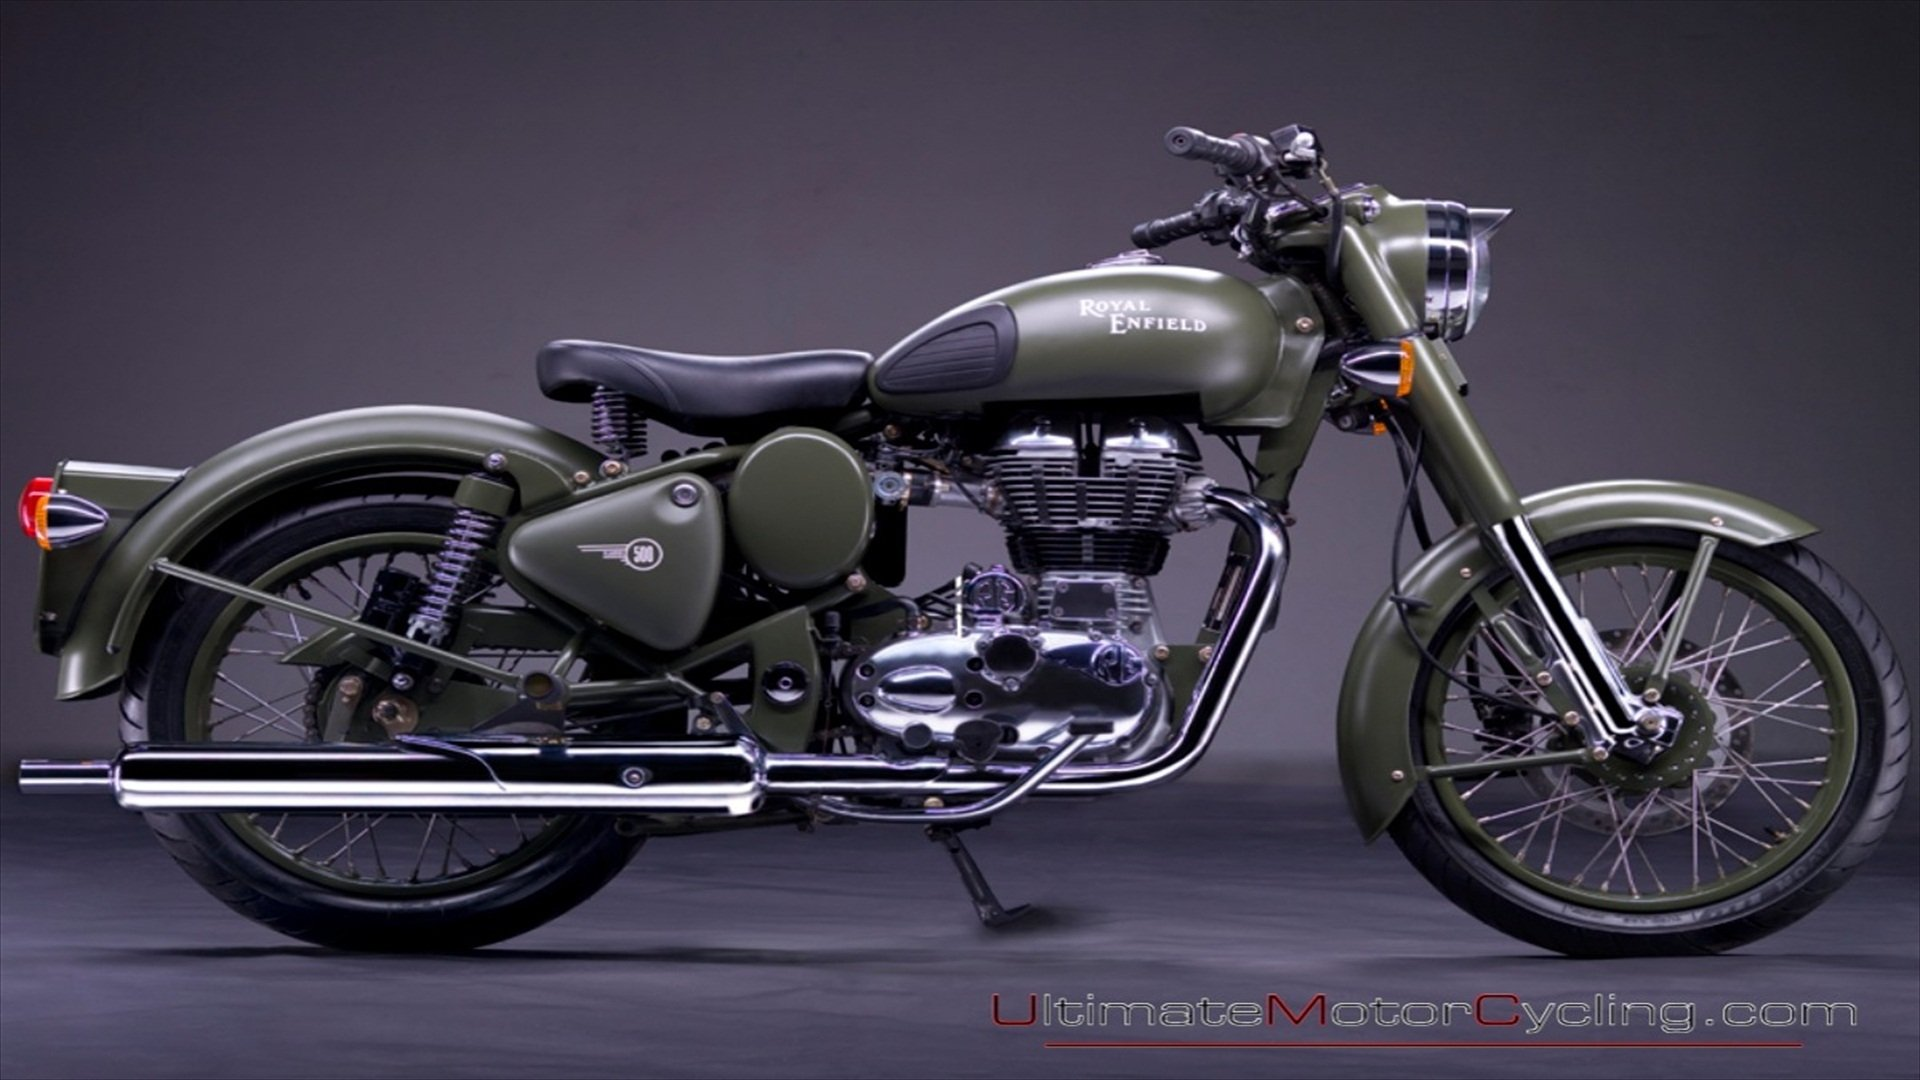 Hd wallpaper royal enfield - Hd Wallpaper Background Id 141920 1920x1080 Vehicles Royal Enfield